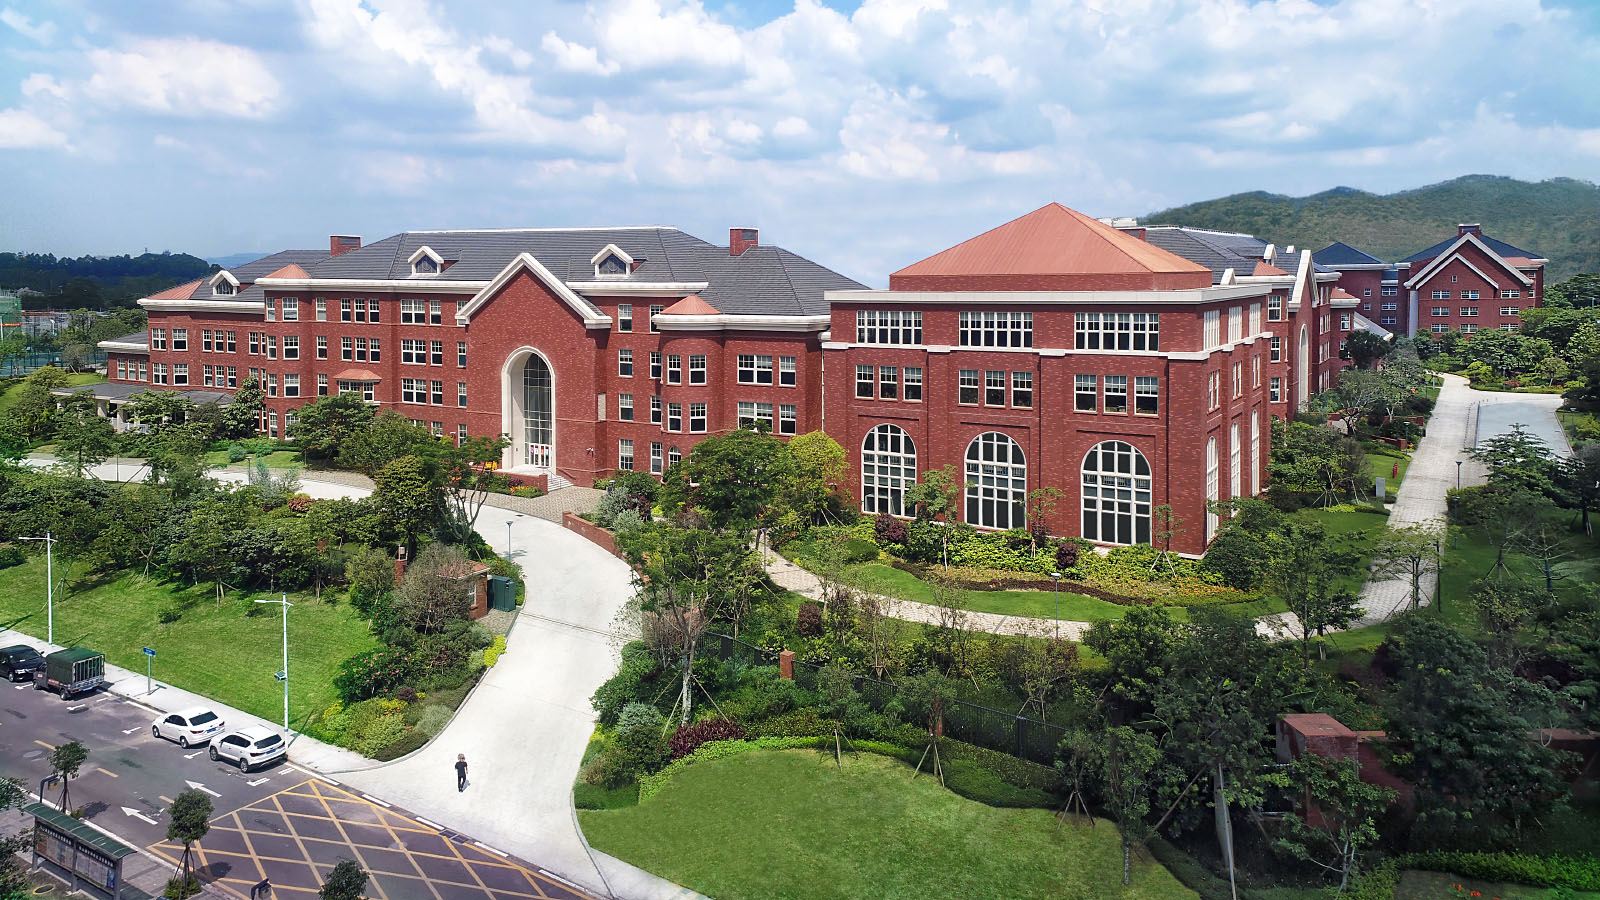 Aerial drone photography by Paul Dingman of international schools in China. Paul Dingman designs architectural photographs for architects.